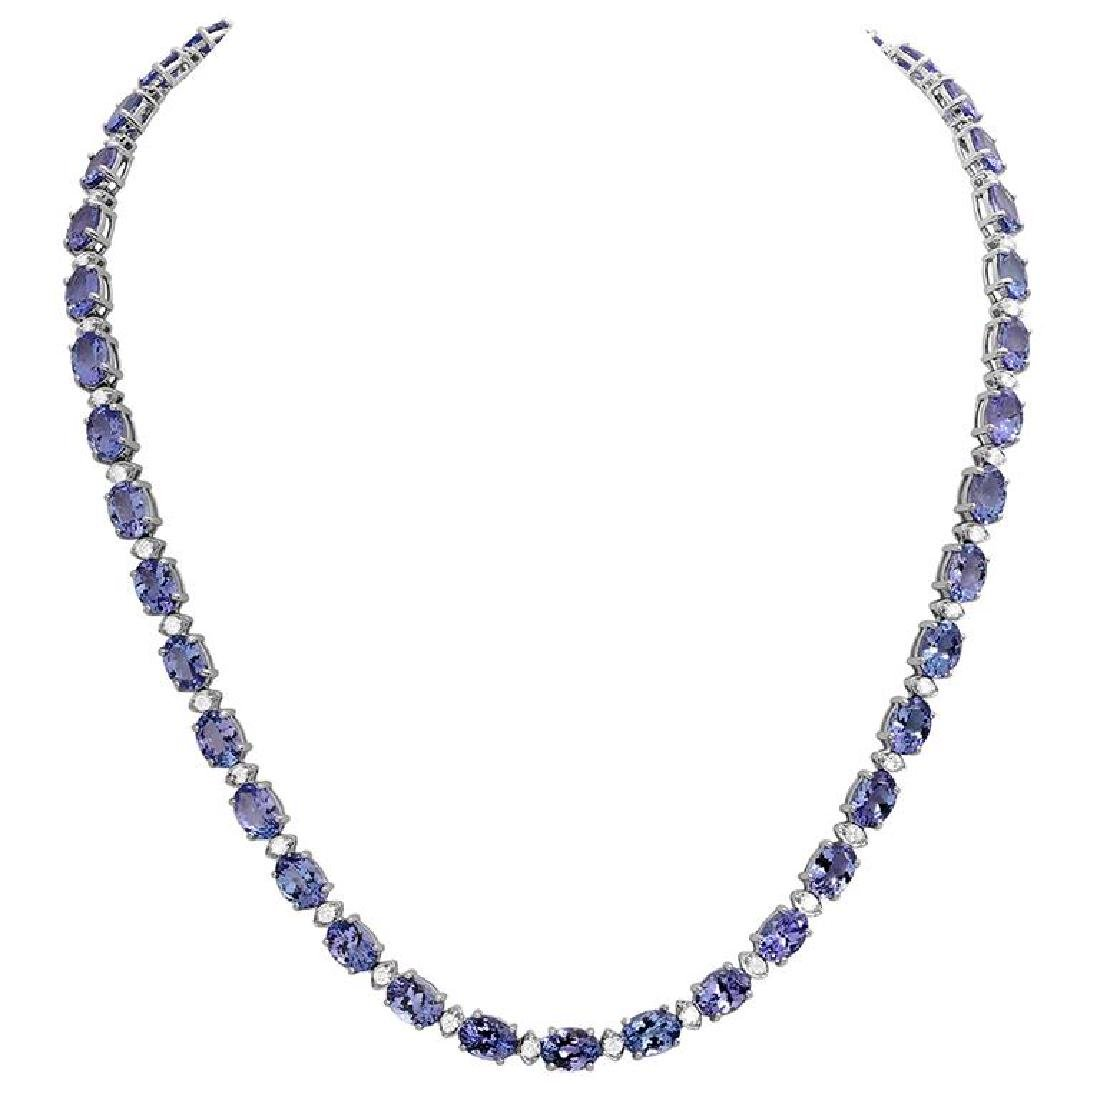 14k White Gold 35.89ct Tanzanite 1.73ct Diamond